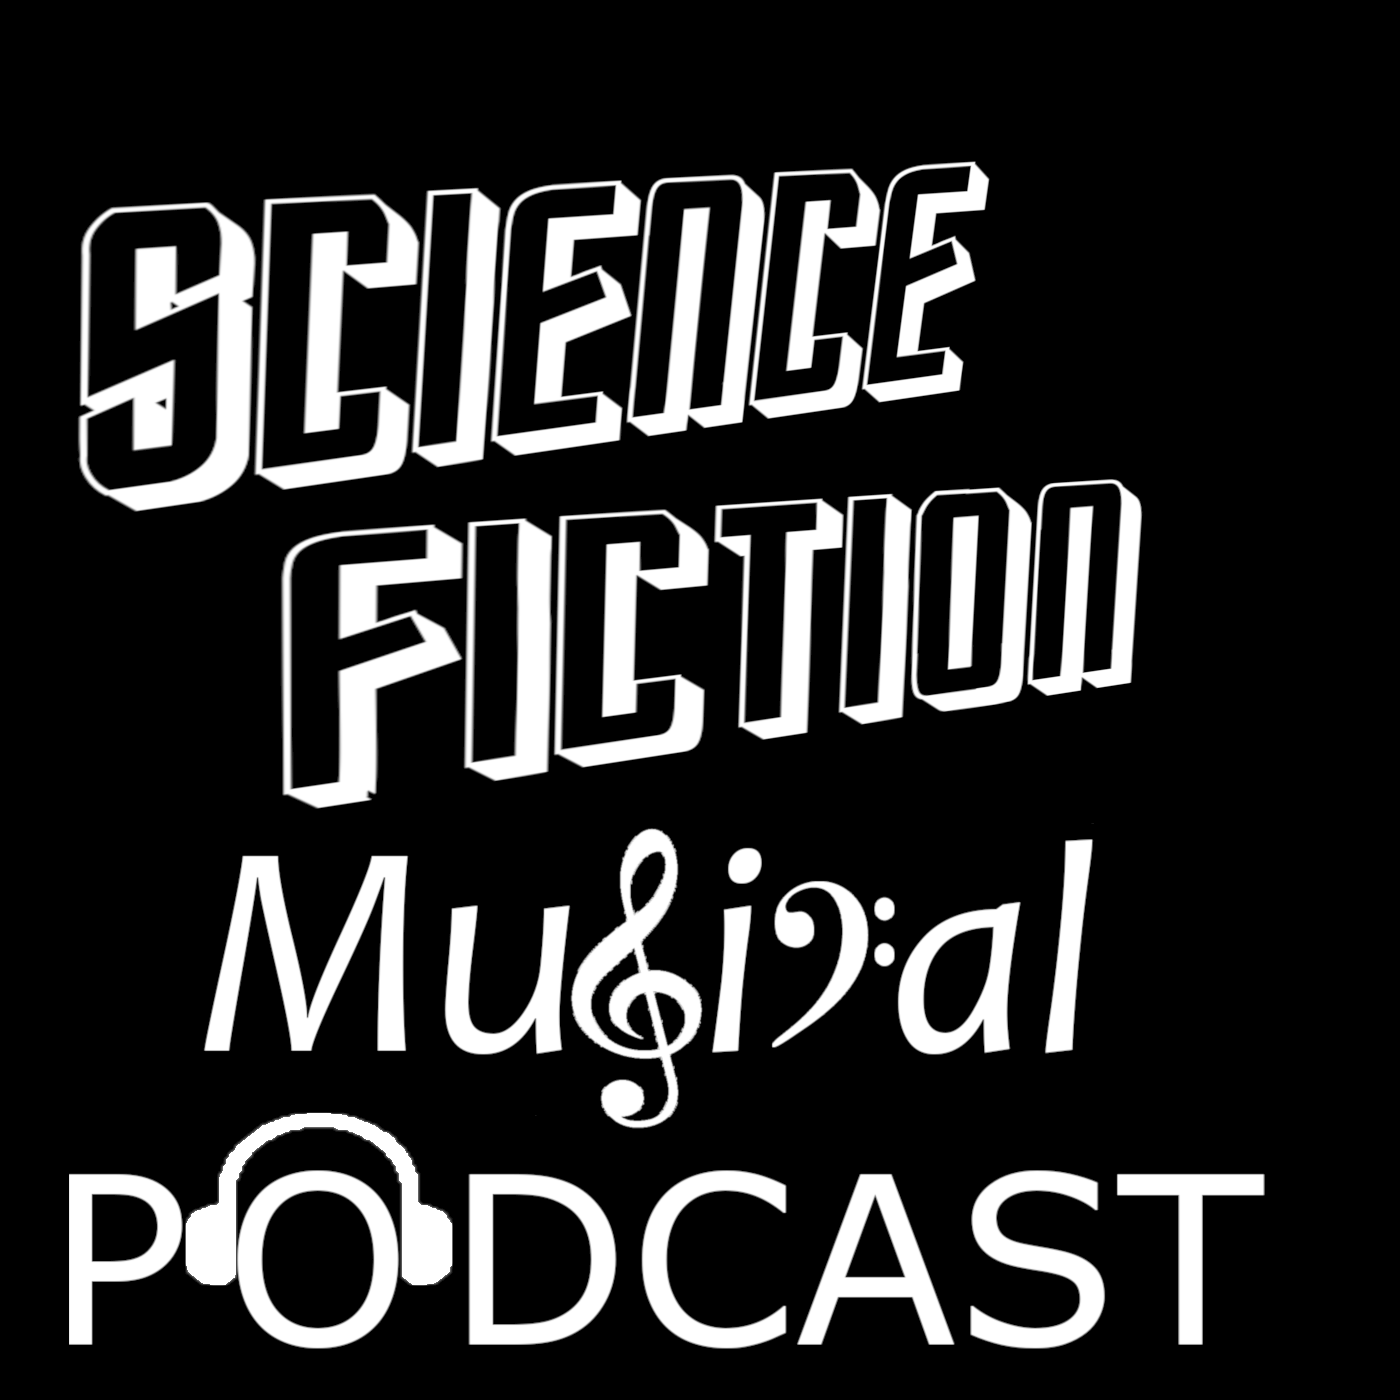 Science Fiction Musical Podcast show art